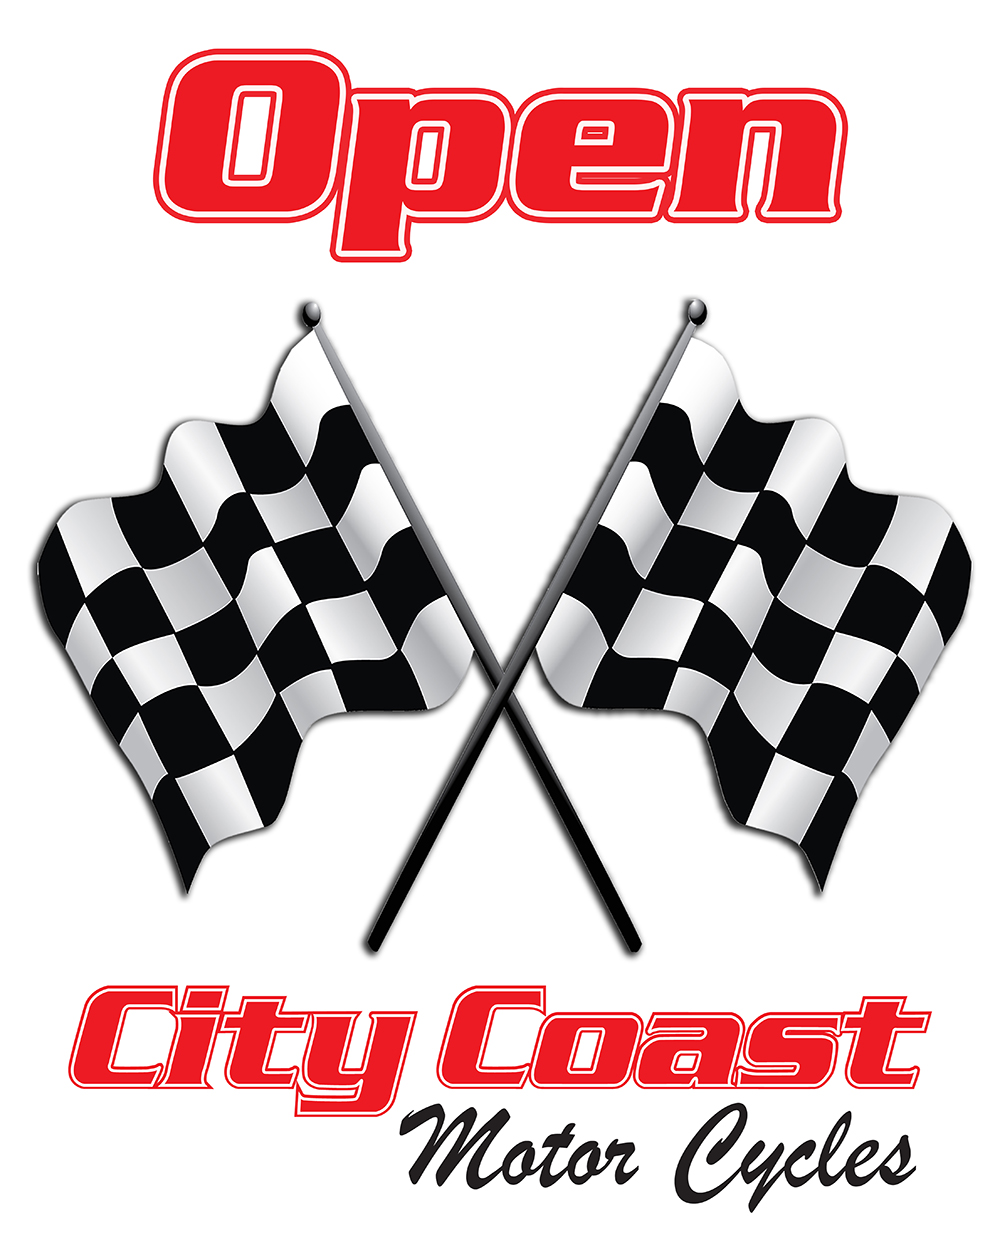 City Coast Motorcycles is open